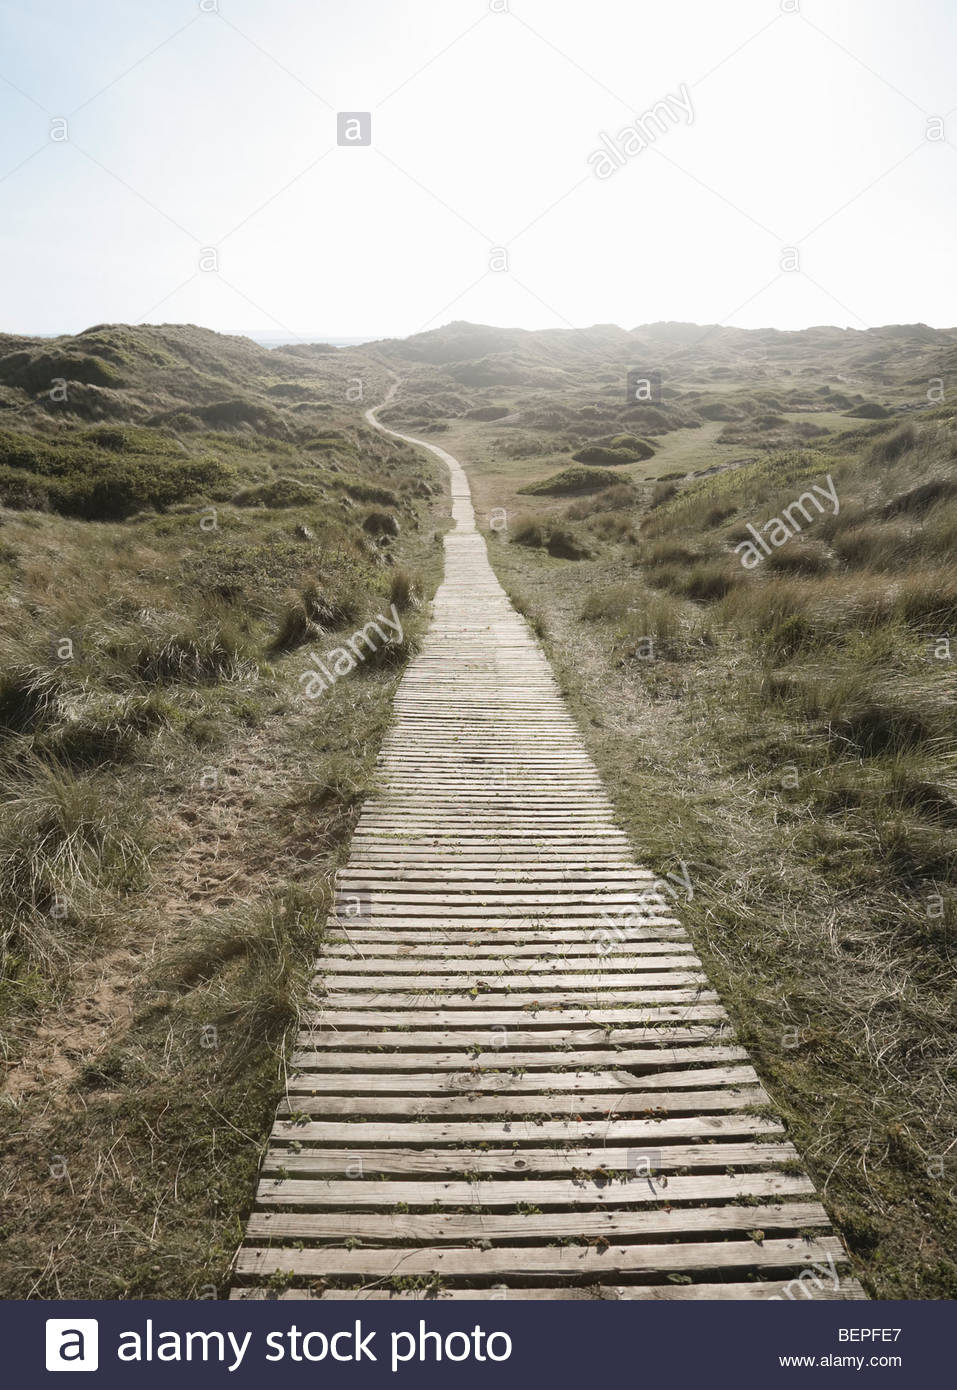 Decking Path winding away - Stock Image